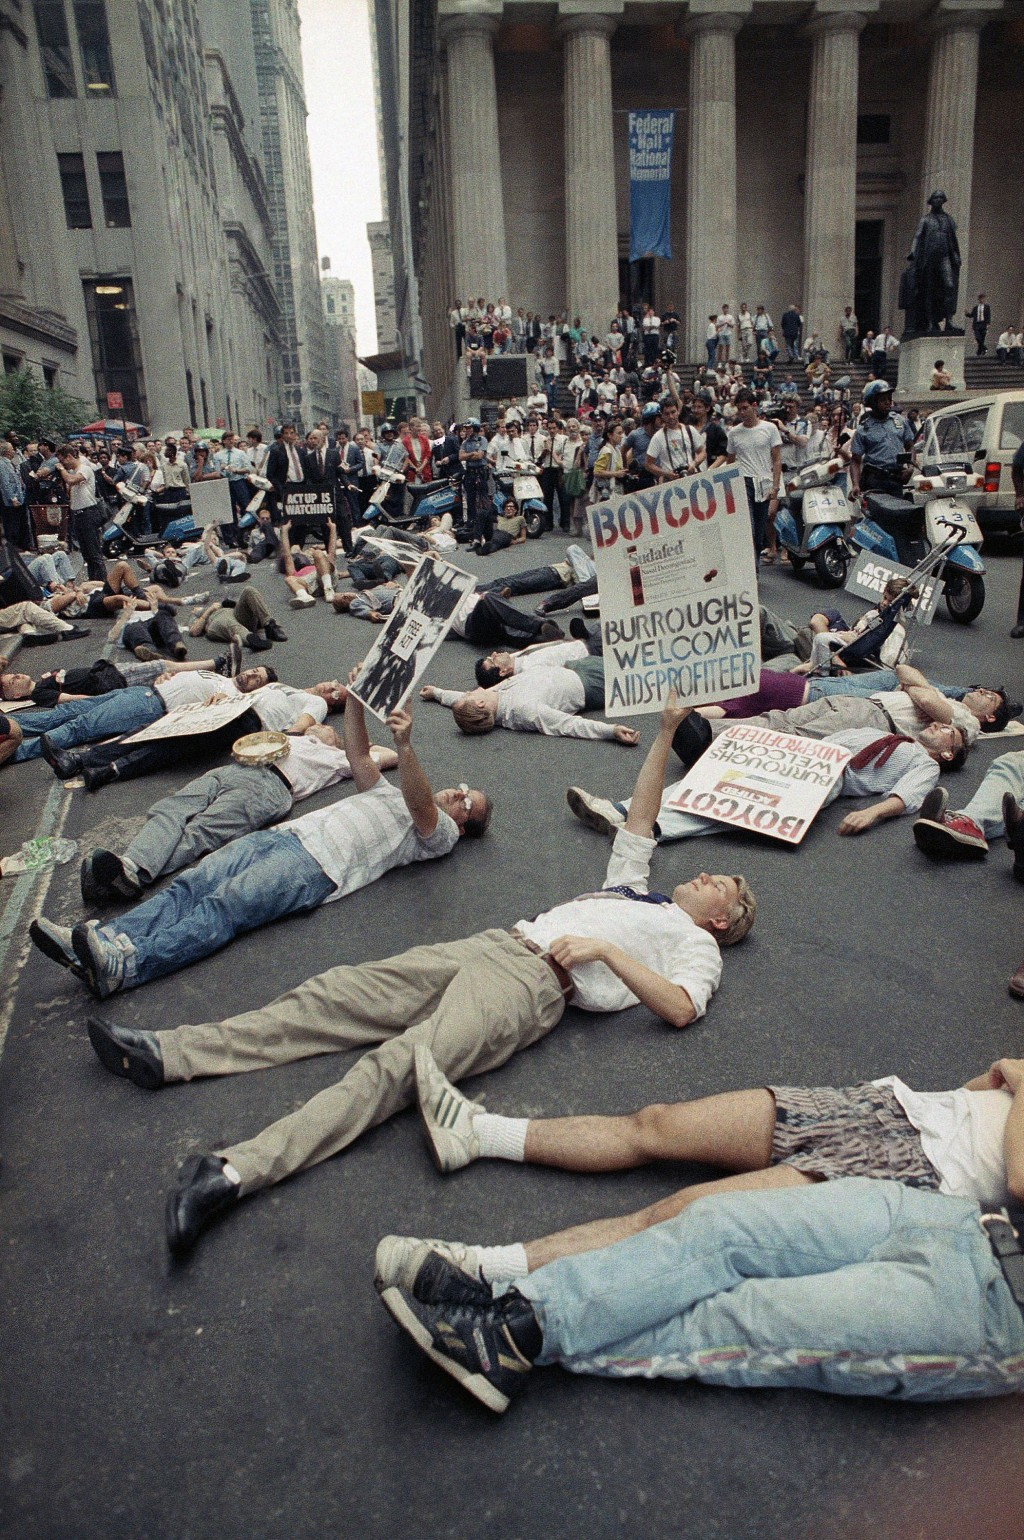 FILE - In this Thursday, Sept. 14, 1989 file photo, protestors lie on the street in front of the New York Stock Exchange in a demonstration against th...